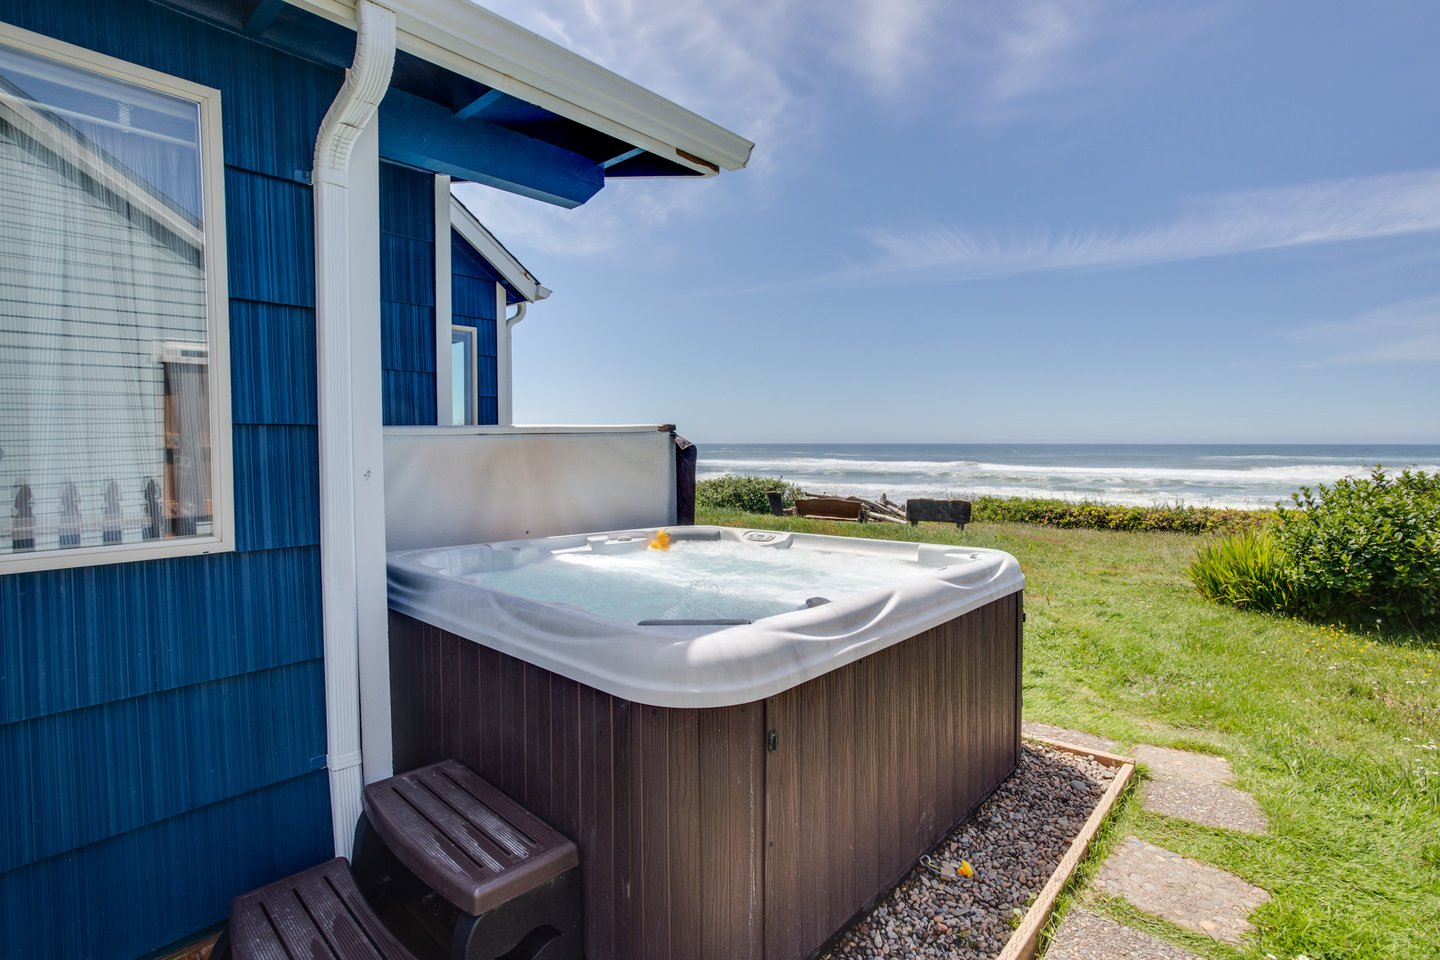 Relax in the hot tub with an amazing view.